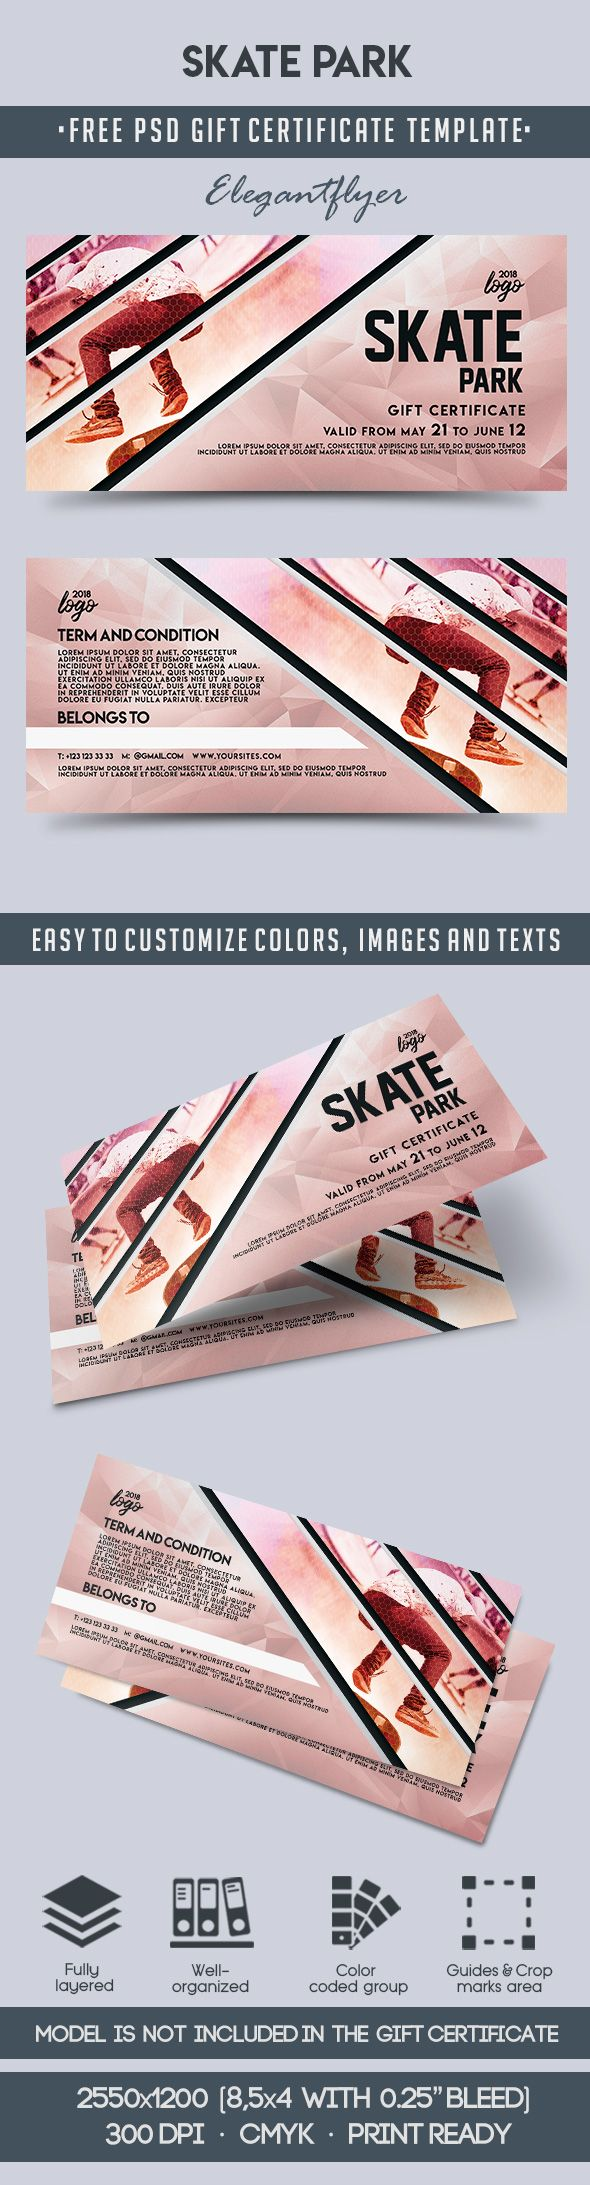 Skate Park – Free Gift Certificate PSD Template